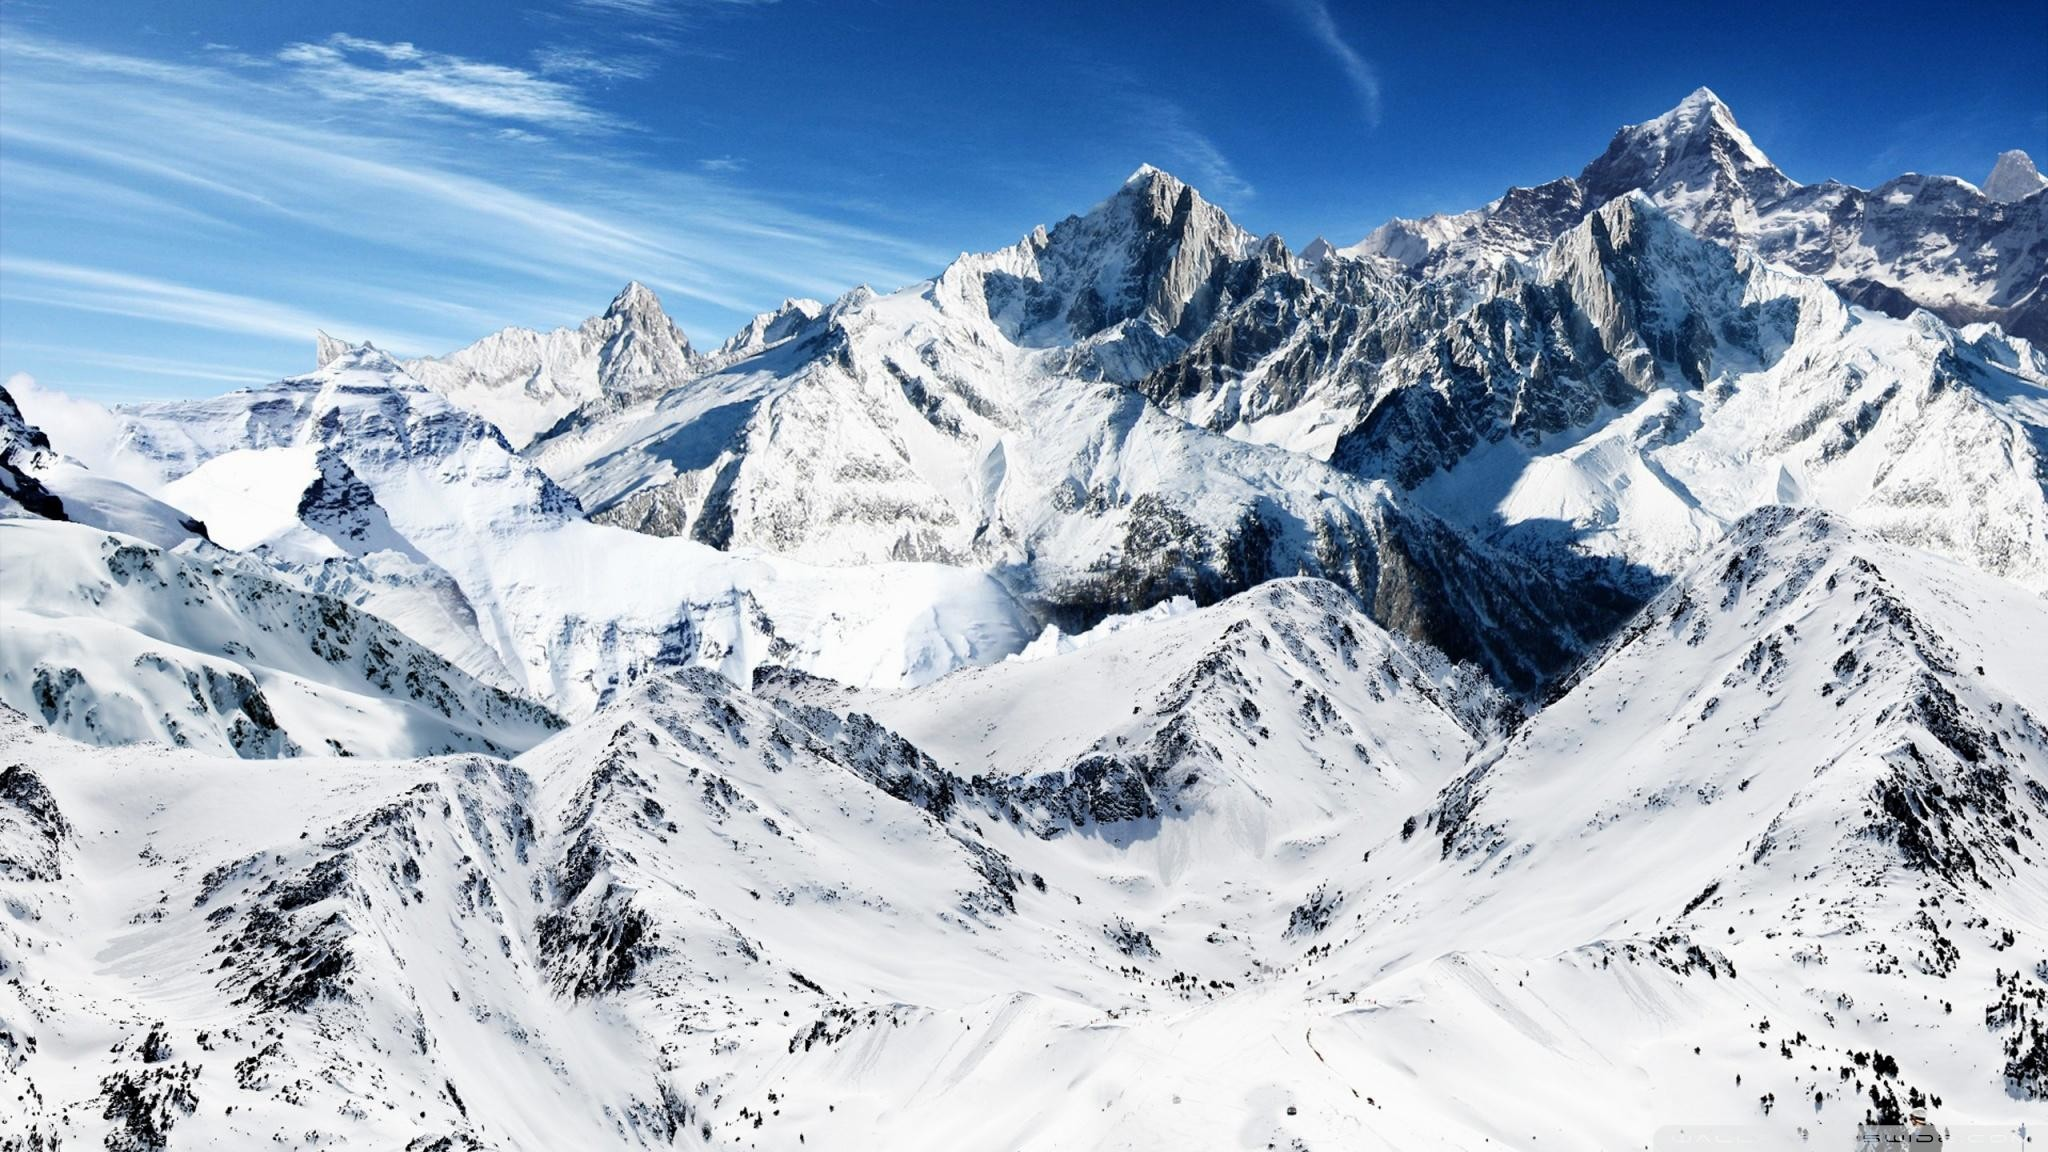 wallpaper.wiki-Snowy-Mountains-Wallpapers-HD-PIC-WPE001041